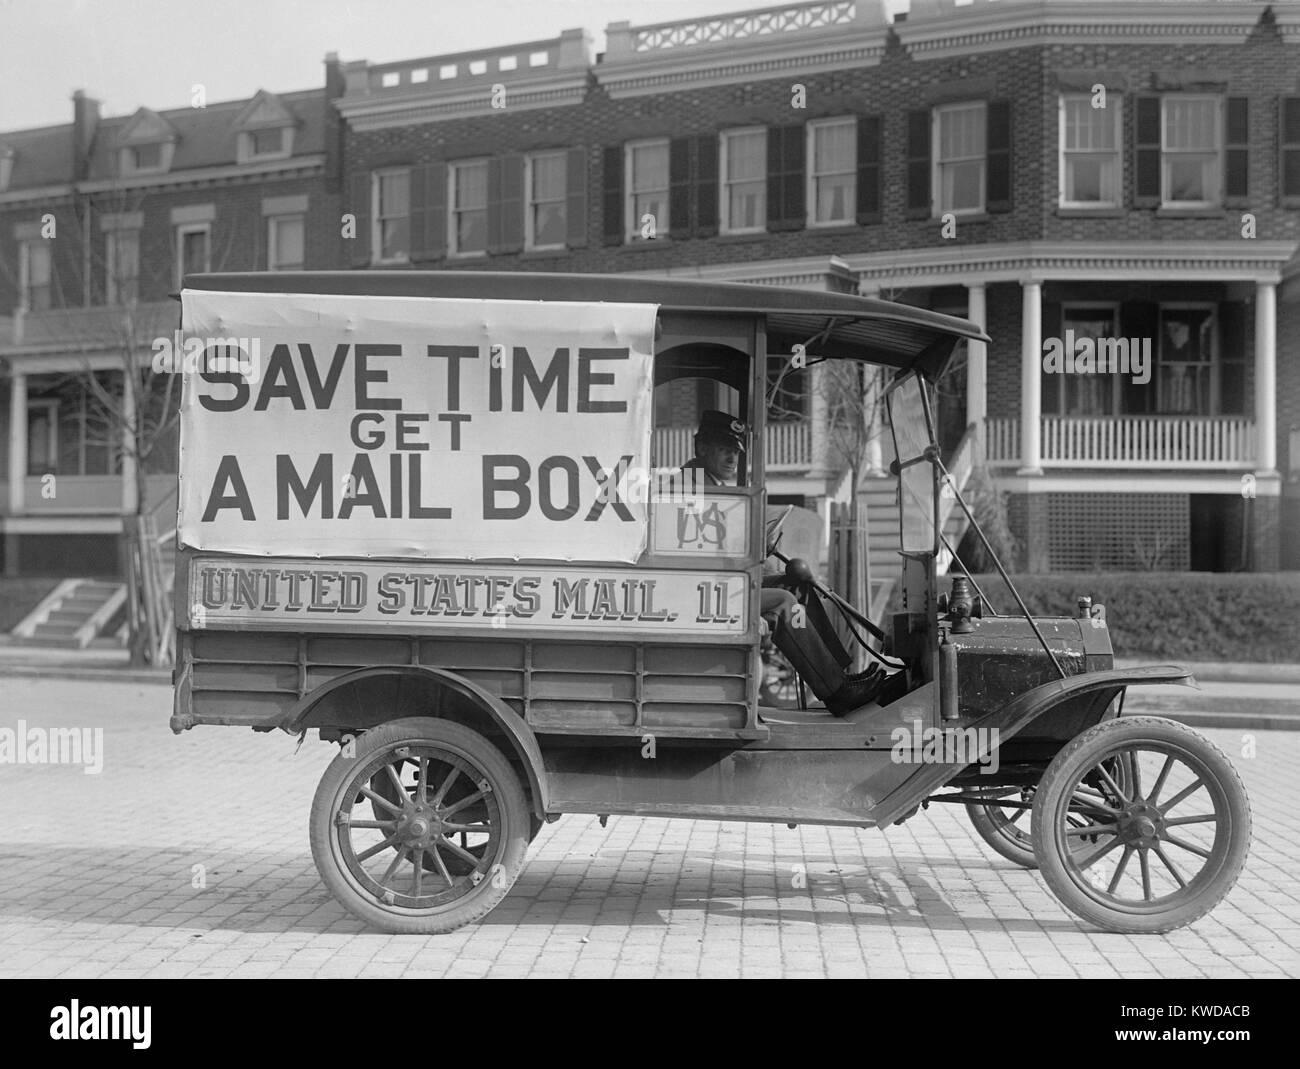 Mail Wagon in Washington, D.C. in 1916. On its side is a large sign encouraging citizens to get mailboxes, allowing Stock Photo